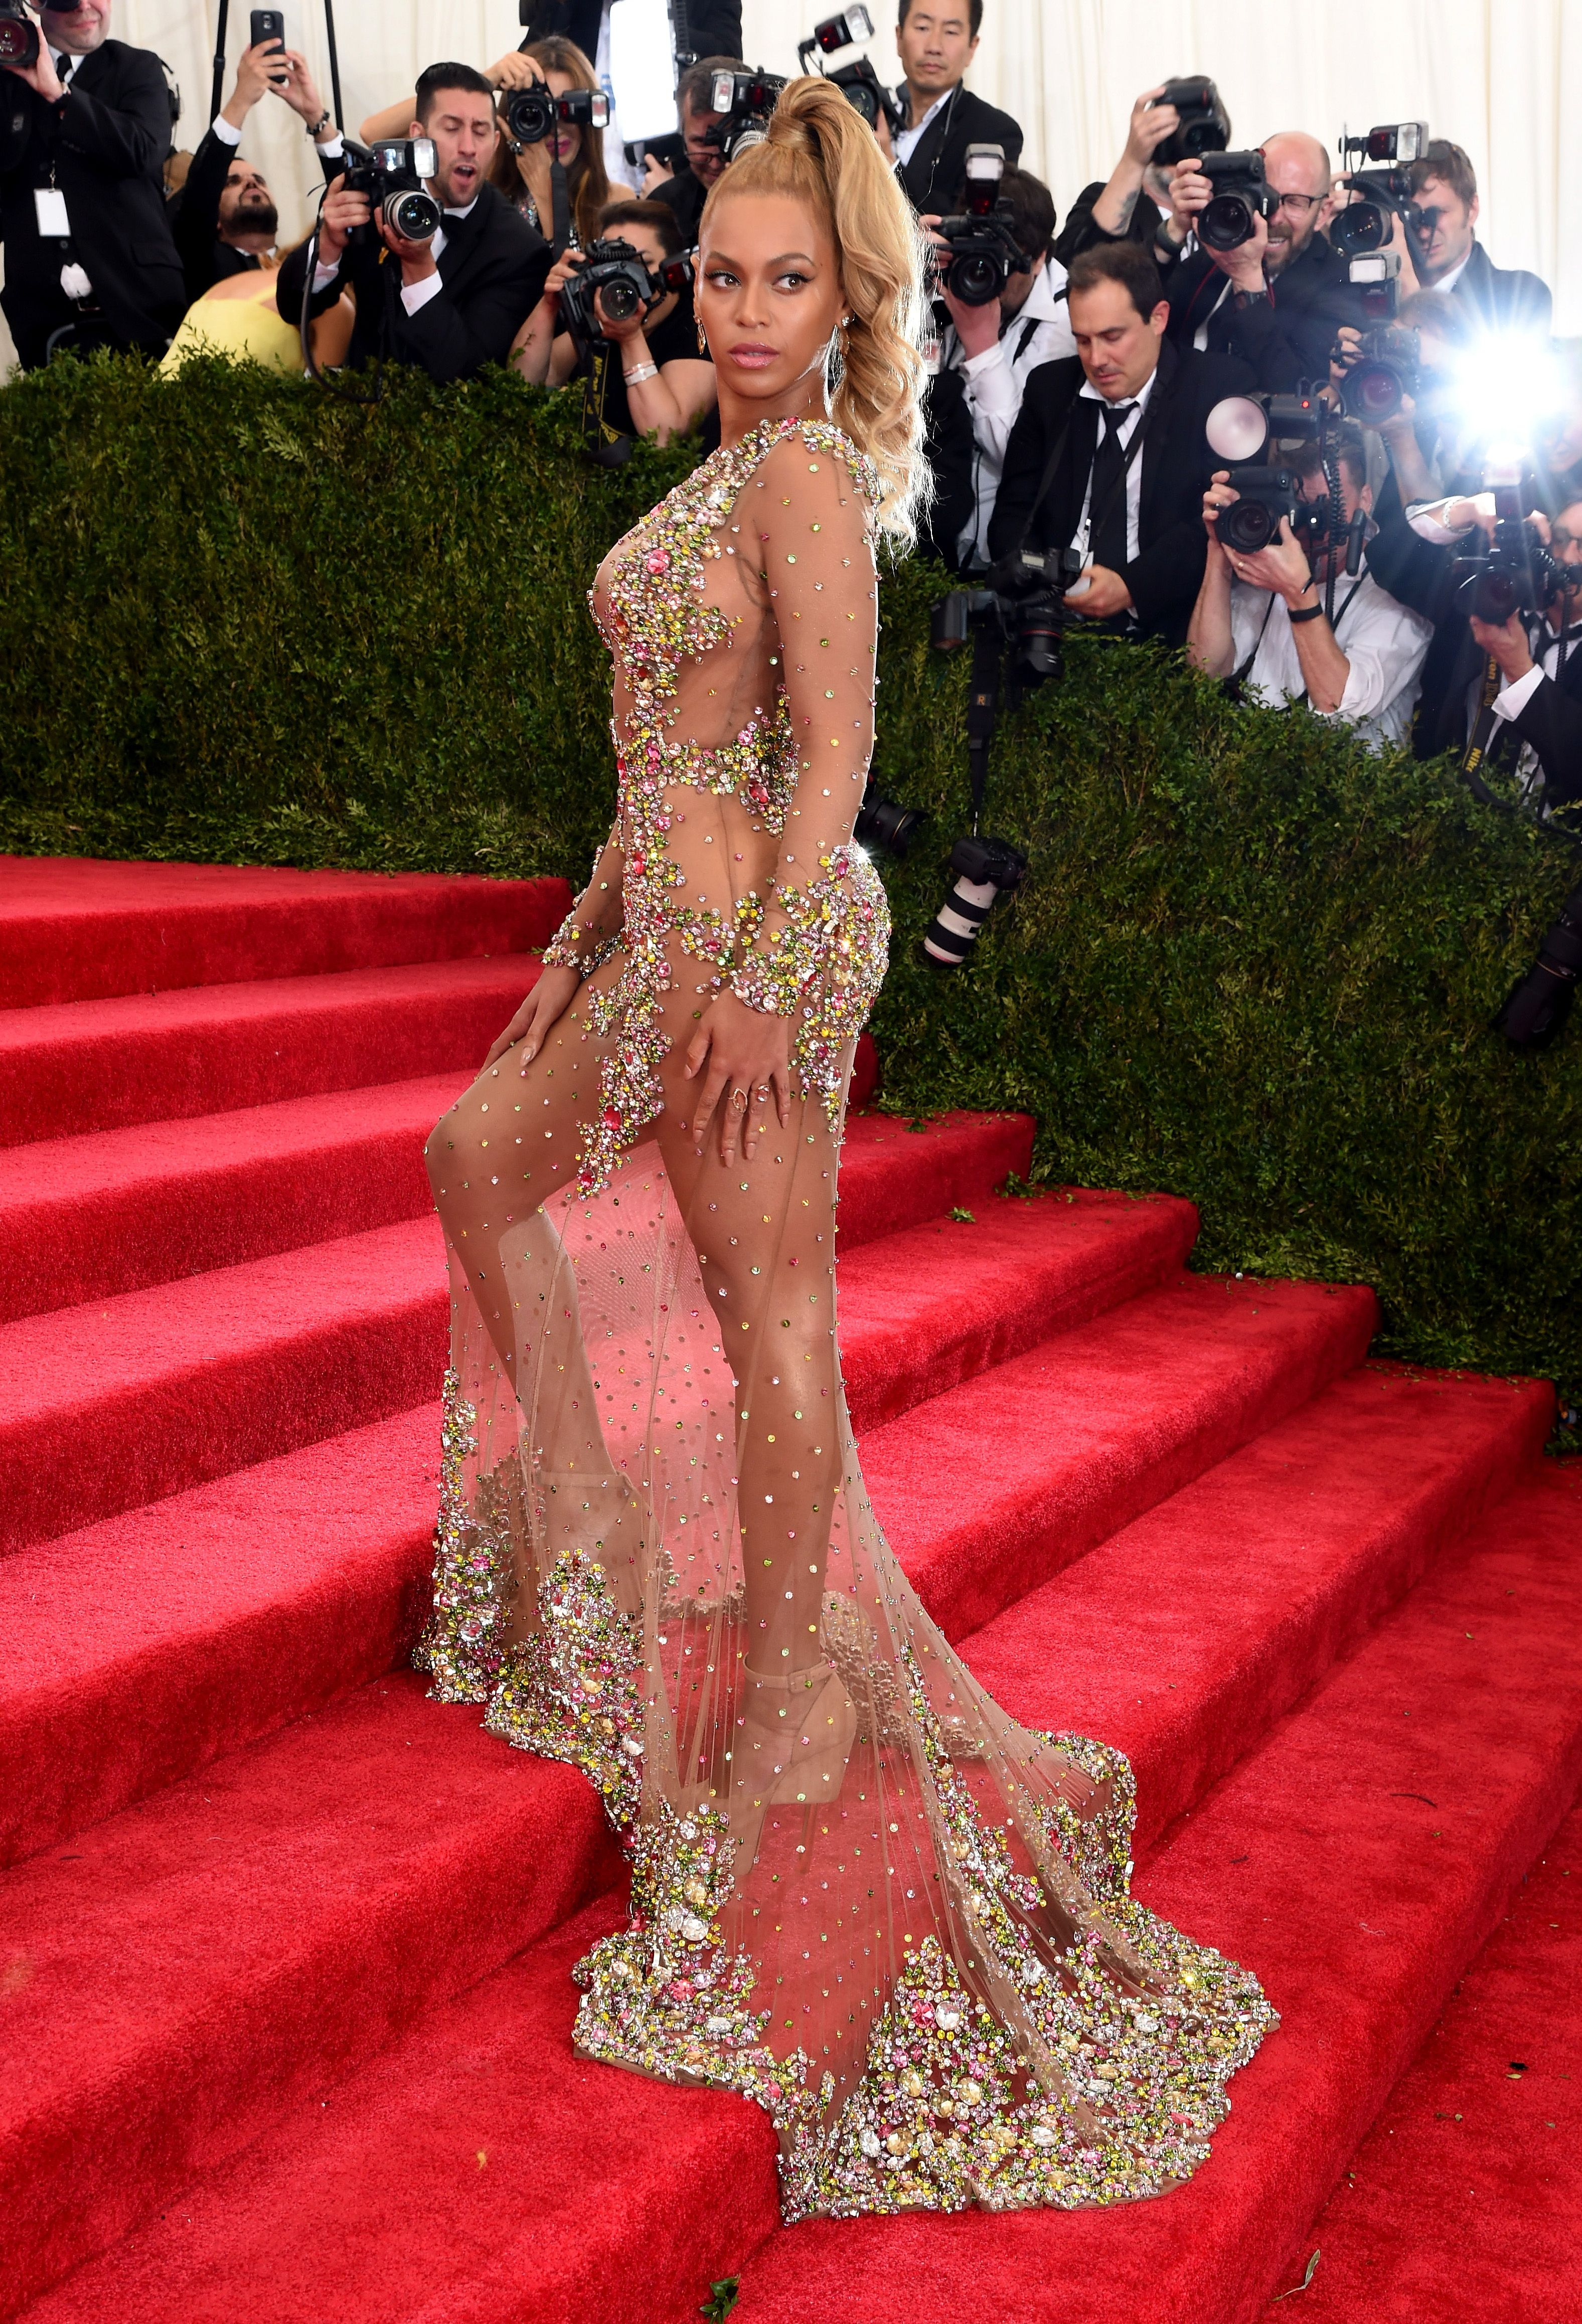 beyonce-all-naked-pictures